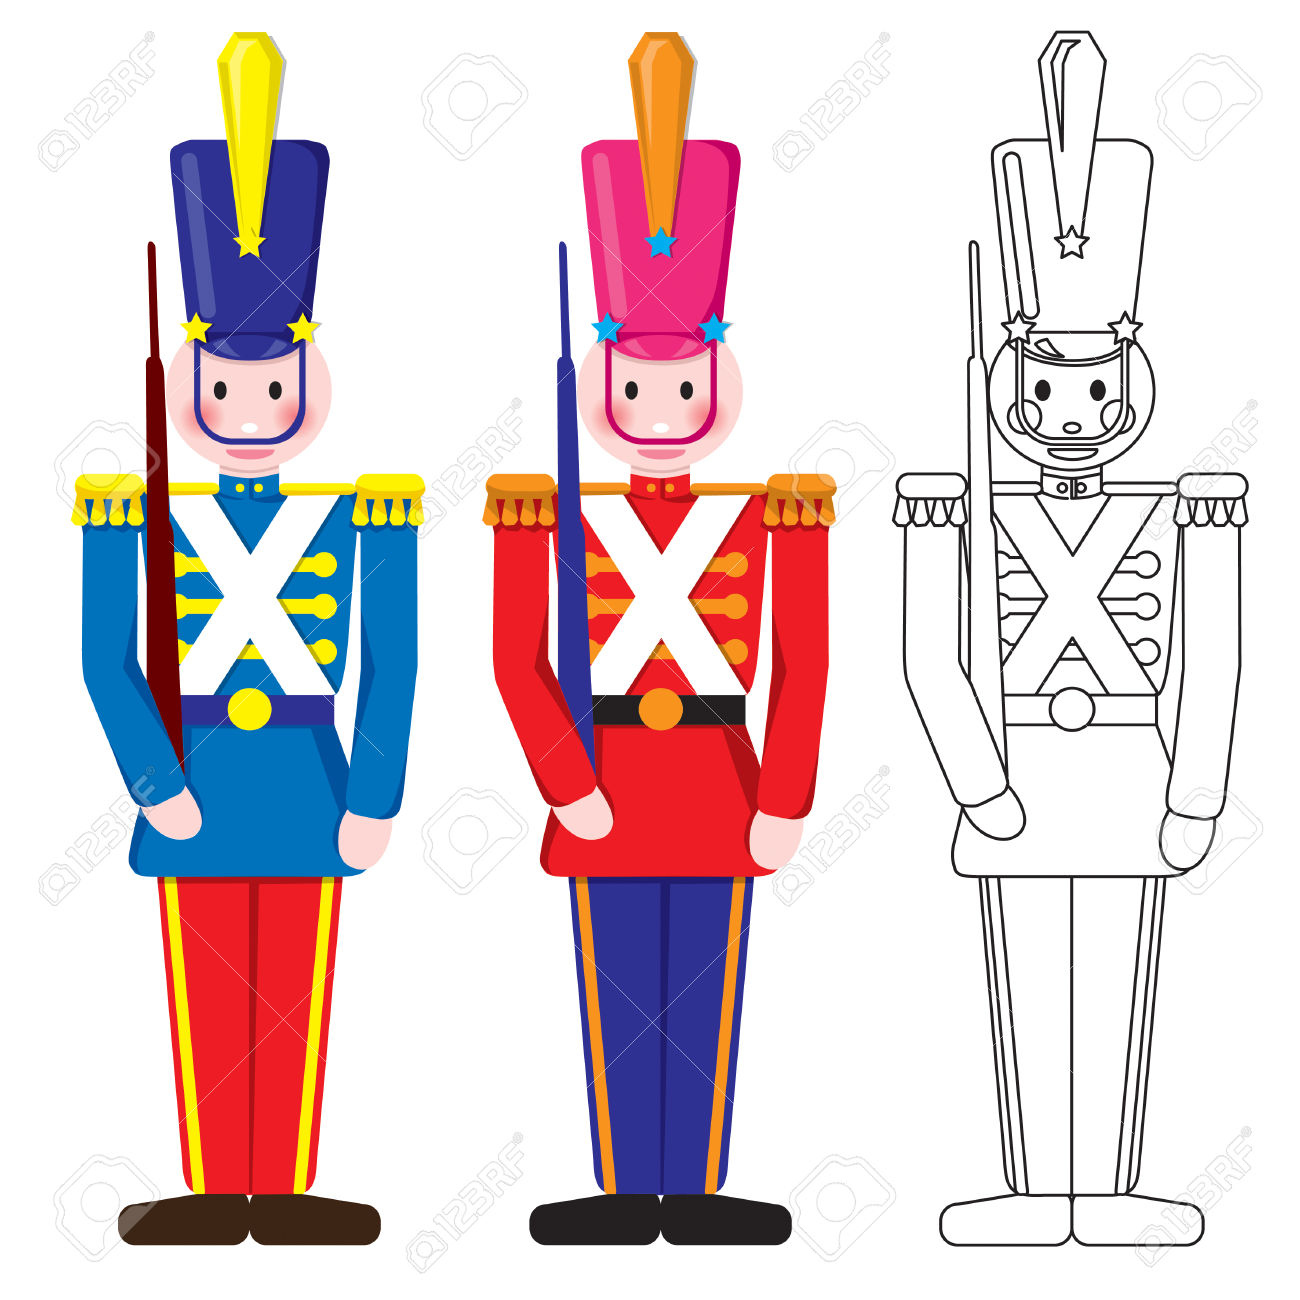 1,356 Toy Soldiers Stock Vector Illustration And Royalty Free Toy.